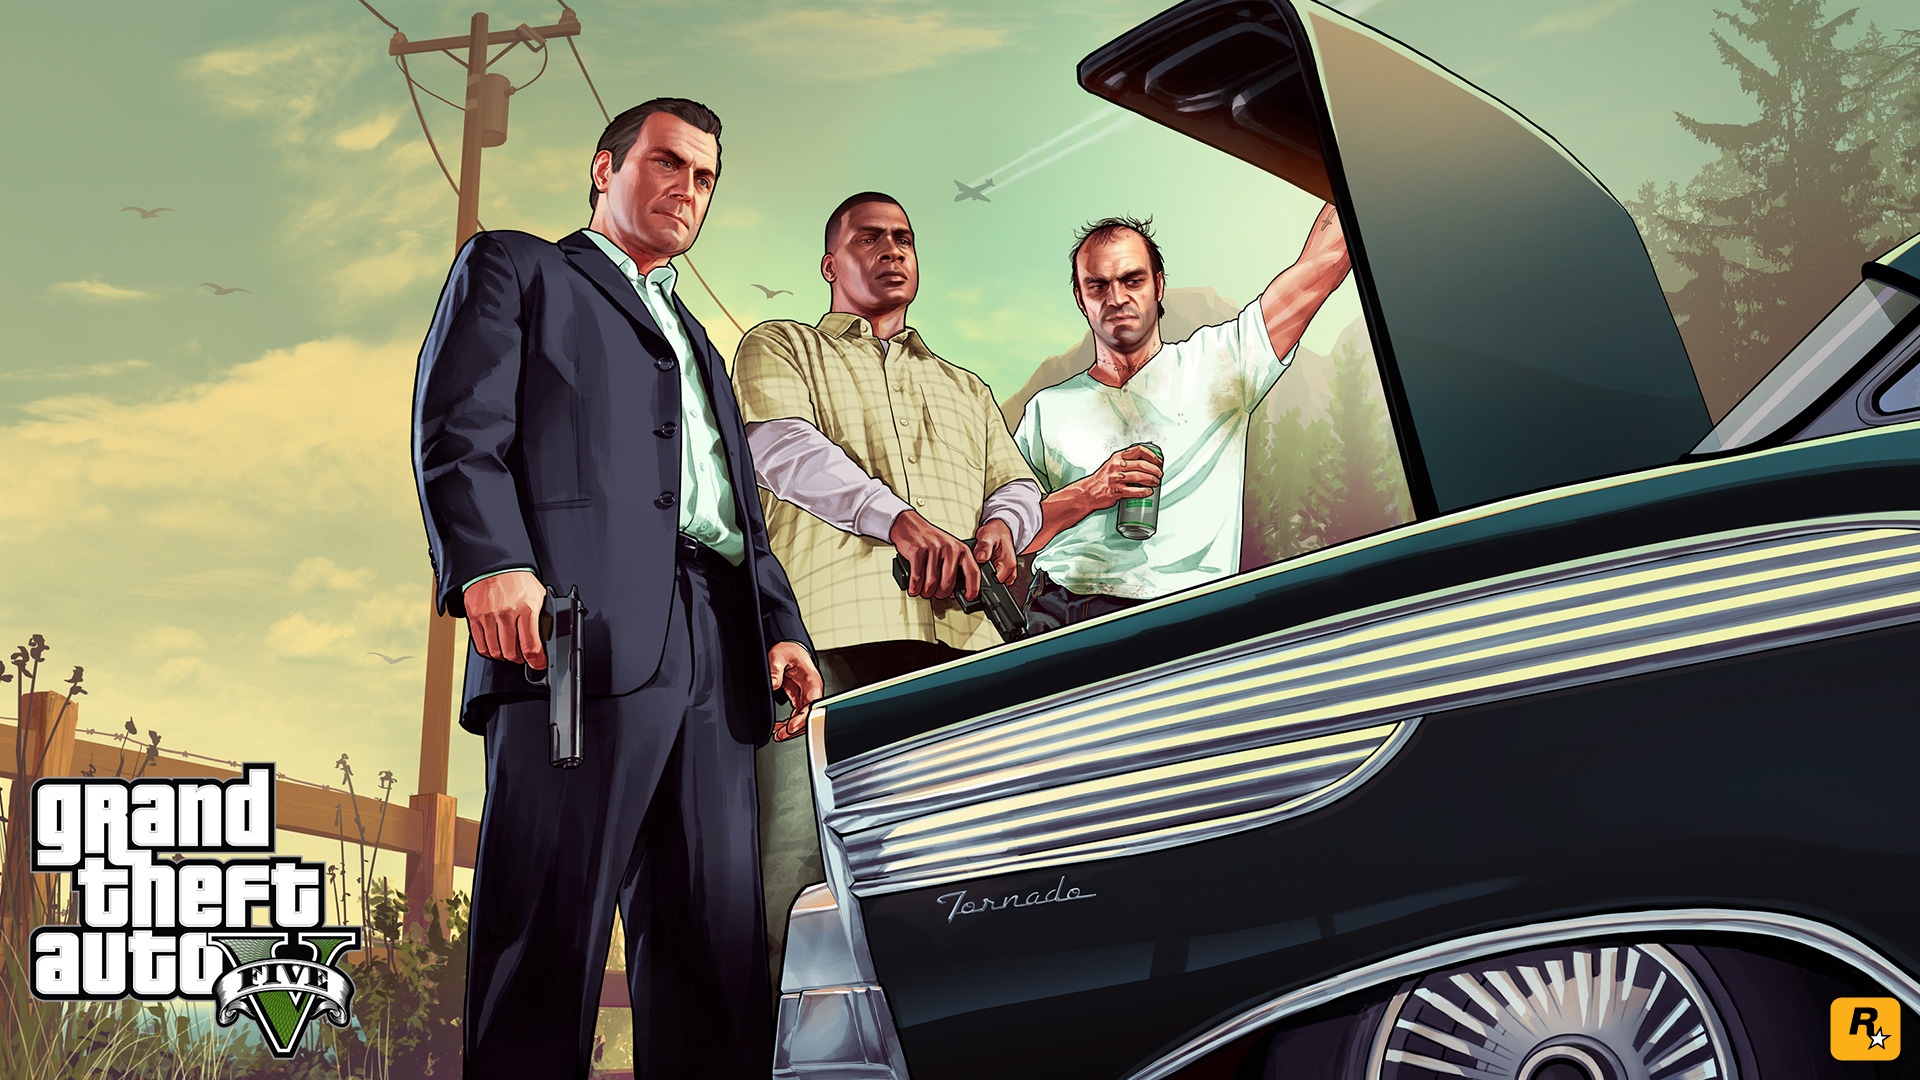 GTA 5 Wallpaper     Greatest collection of Grand Theft Auto V wallpapers     gta 5 trunk 1920x1080 wallpaper